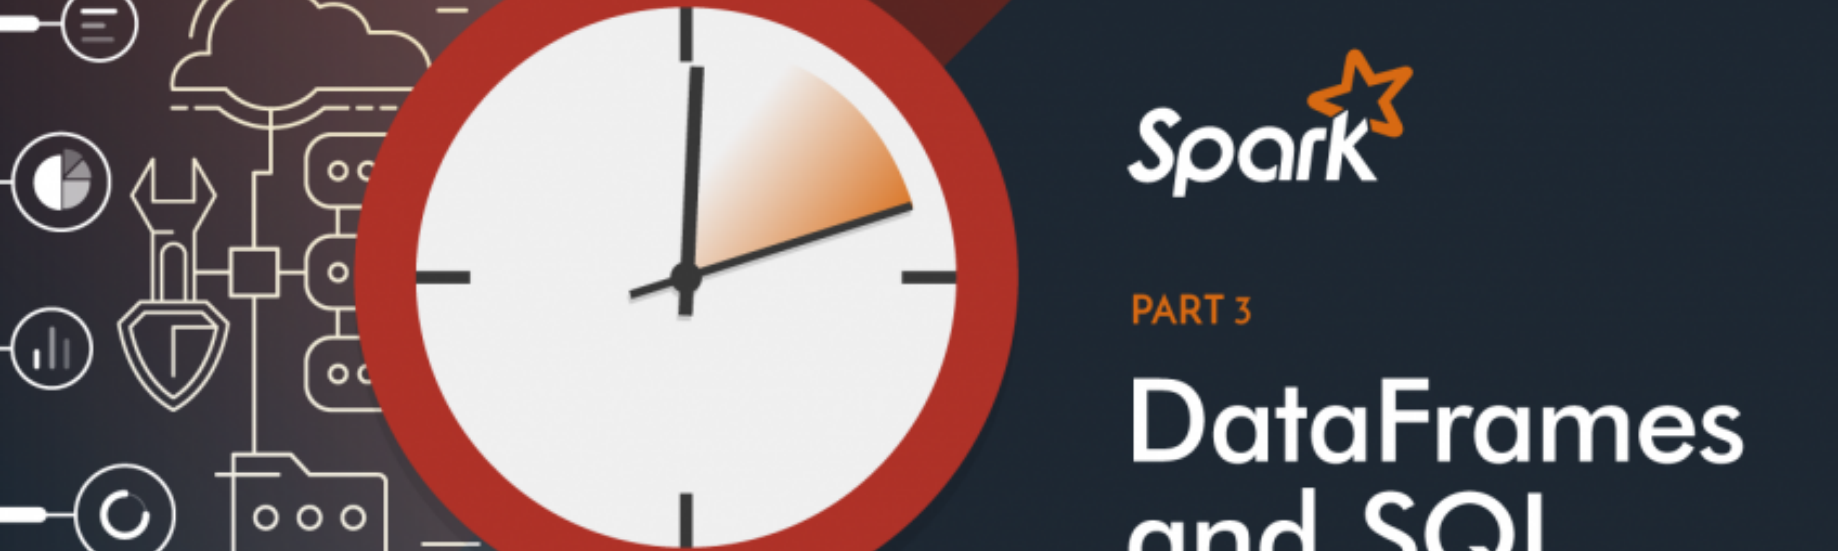 Practical Apache Spark in 10 minutes  Part 3 — DataFrames and SQL